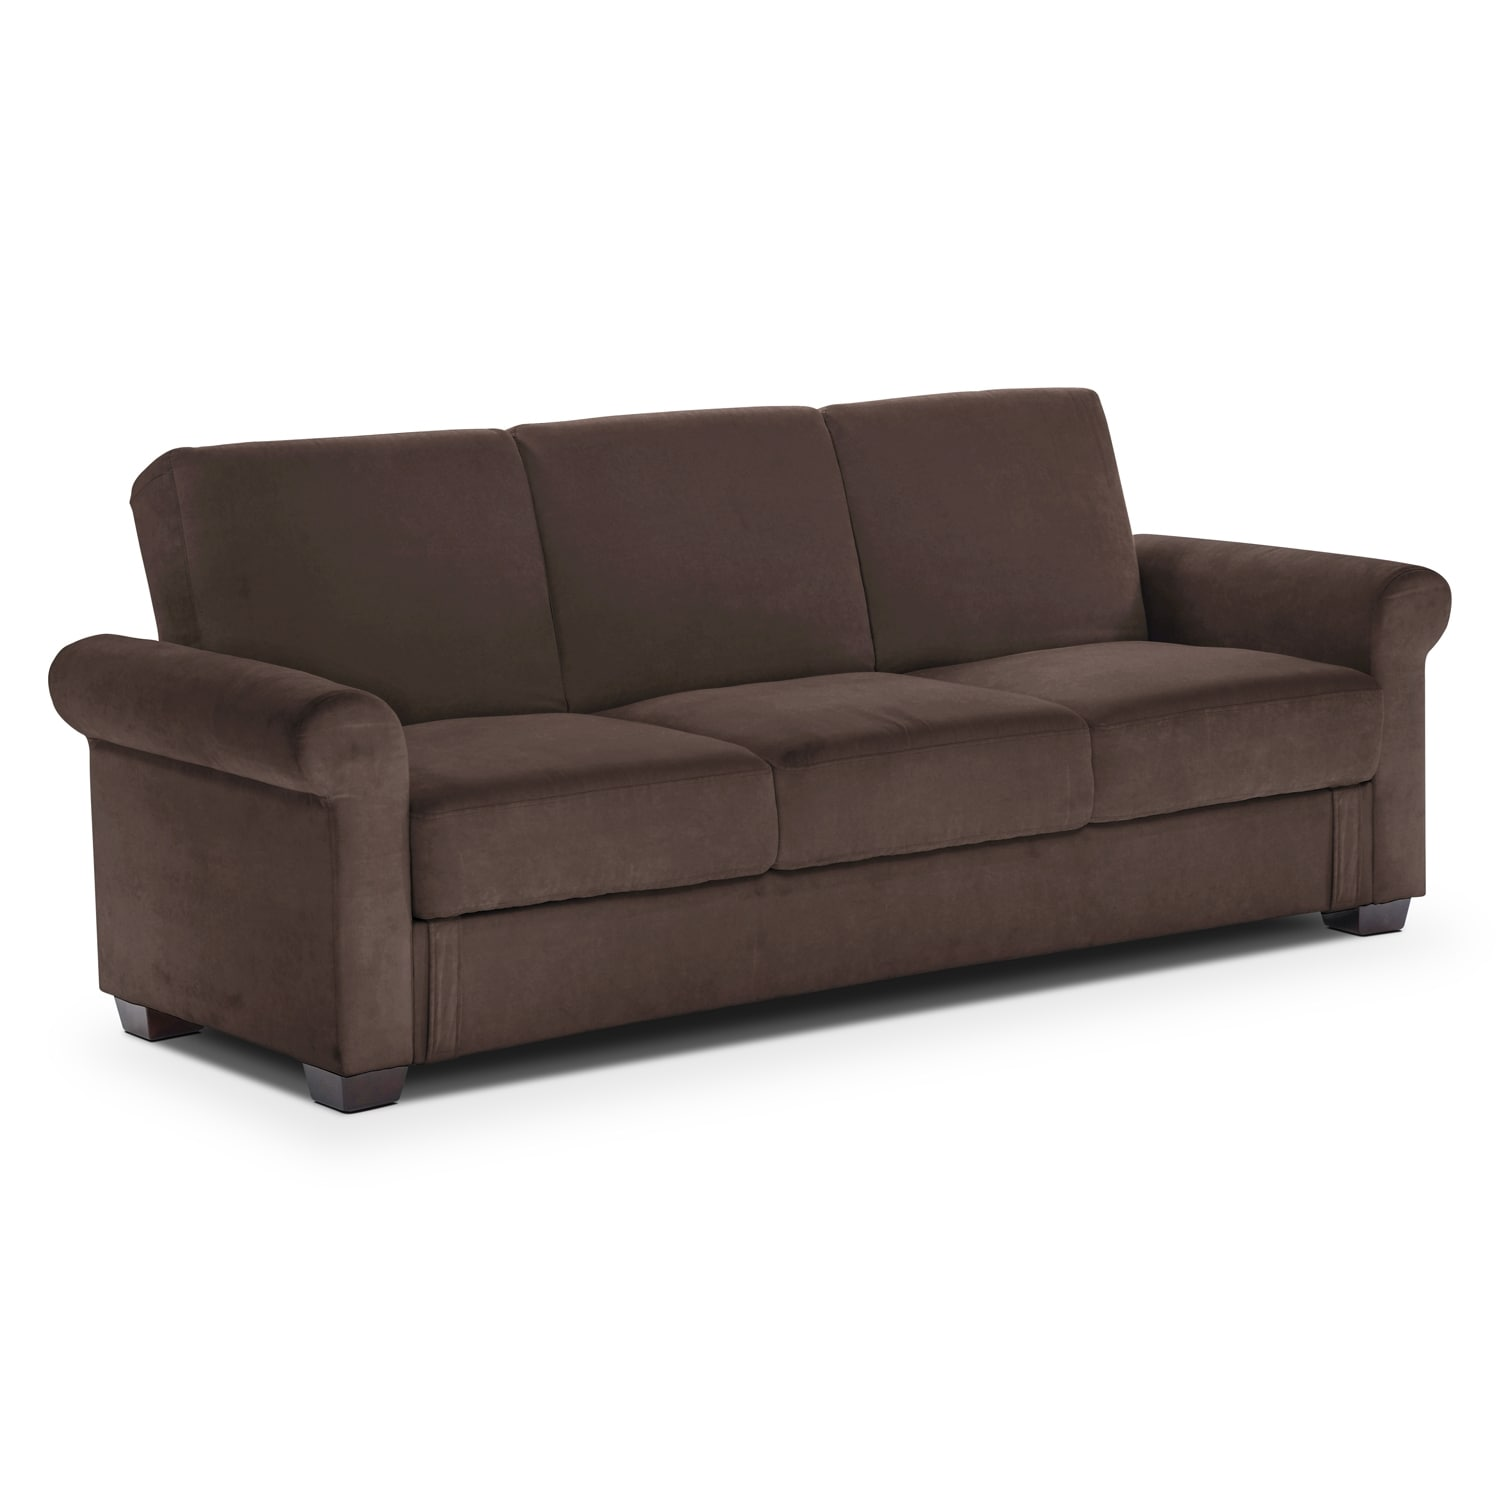 Furnishings for every room online and store furniture for Sofa bed futon